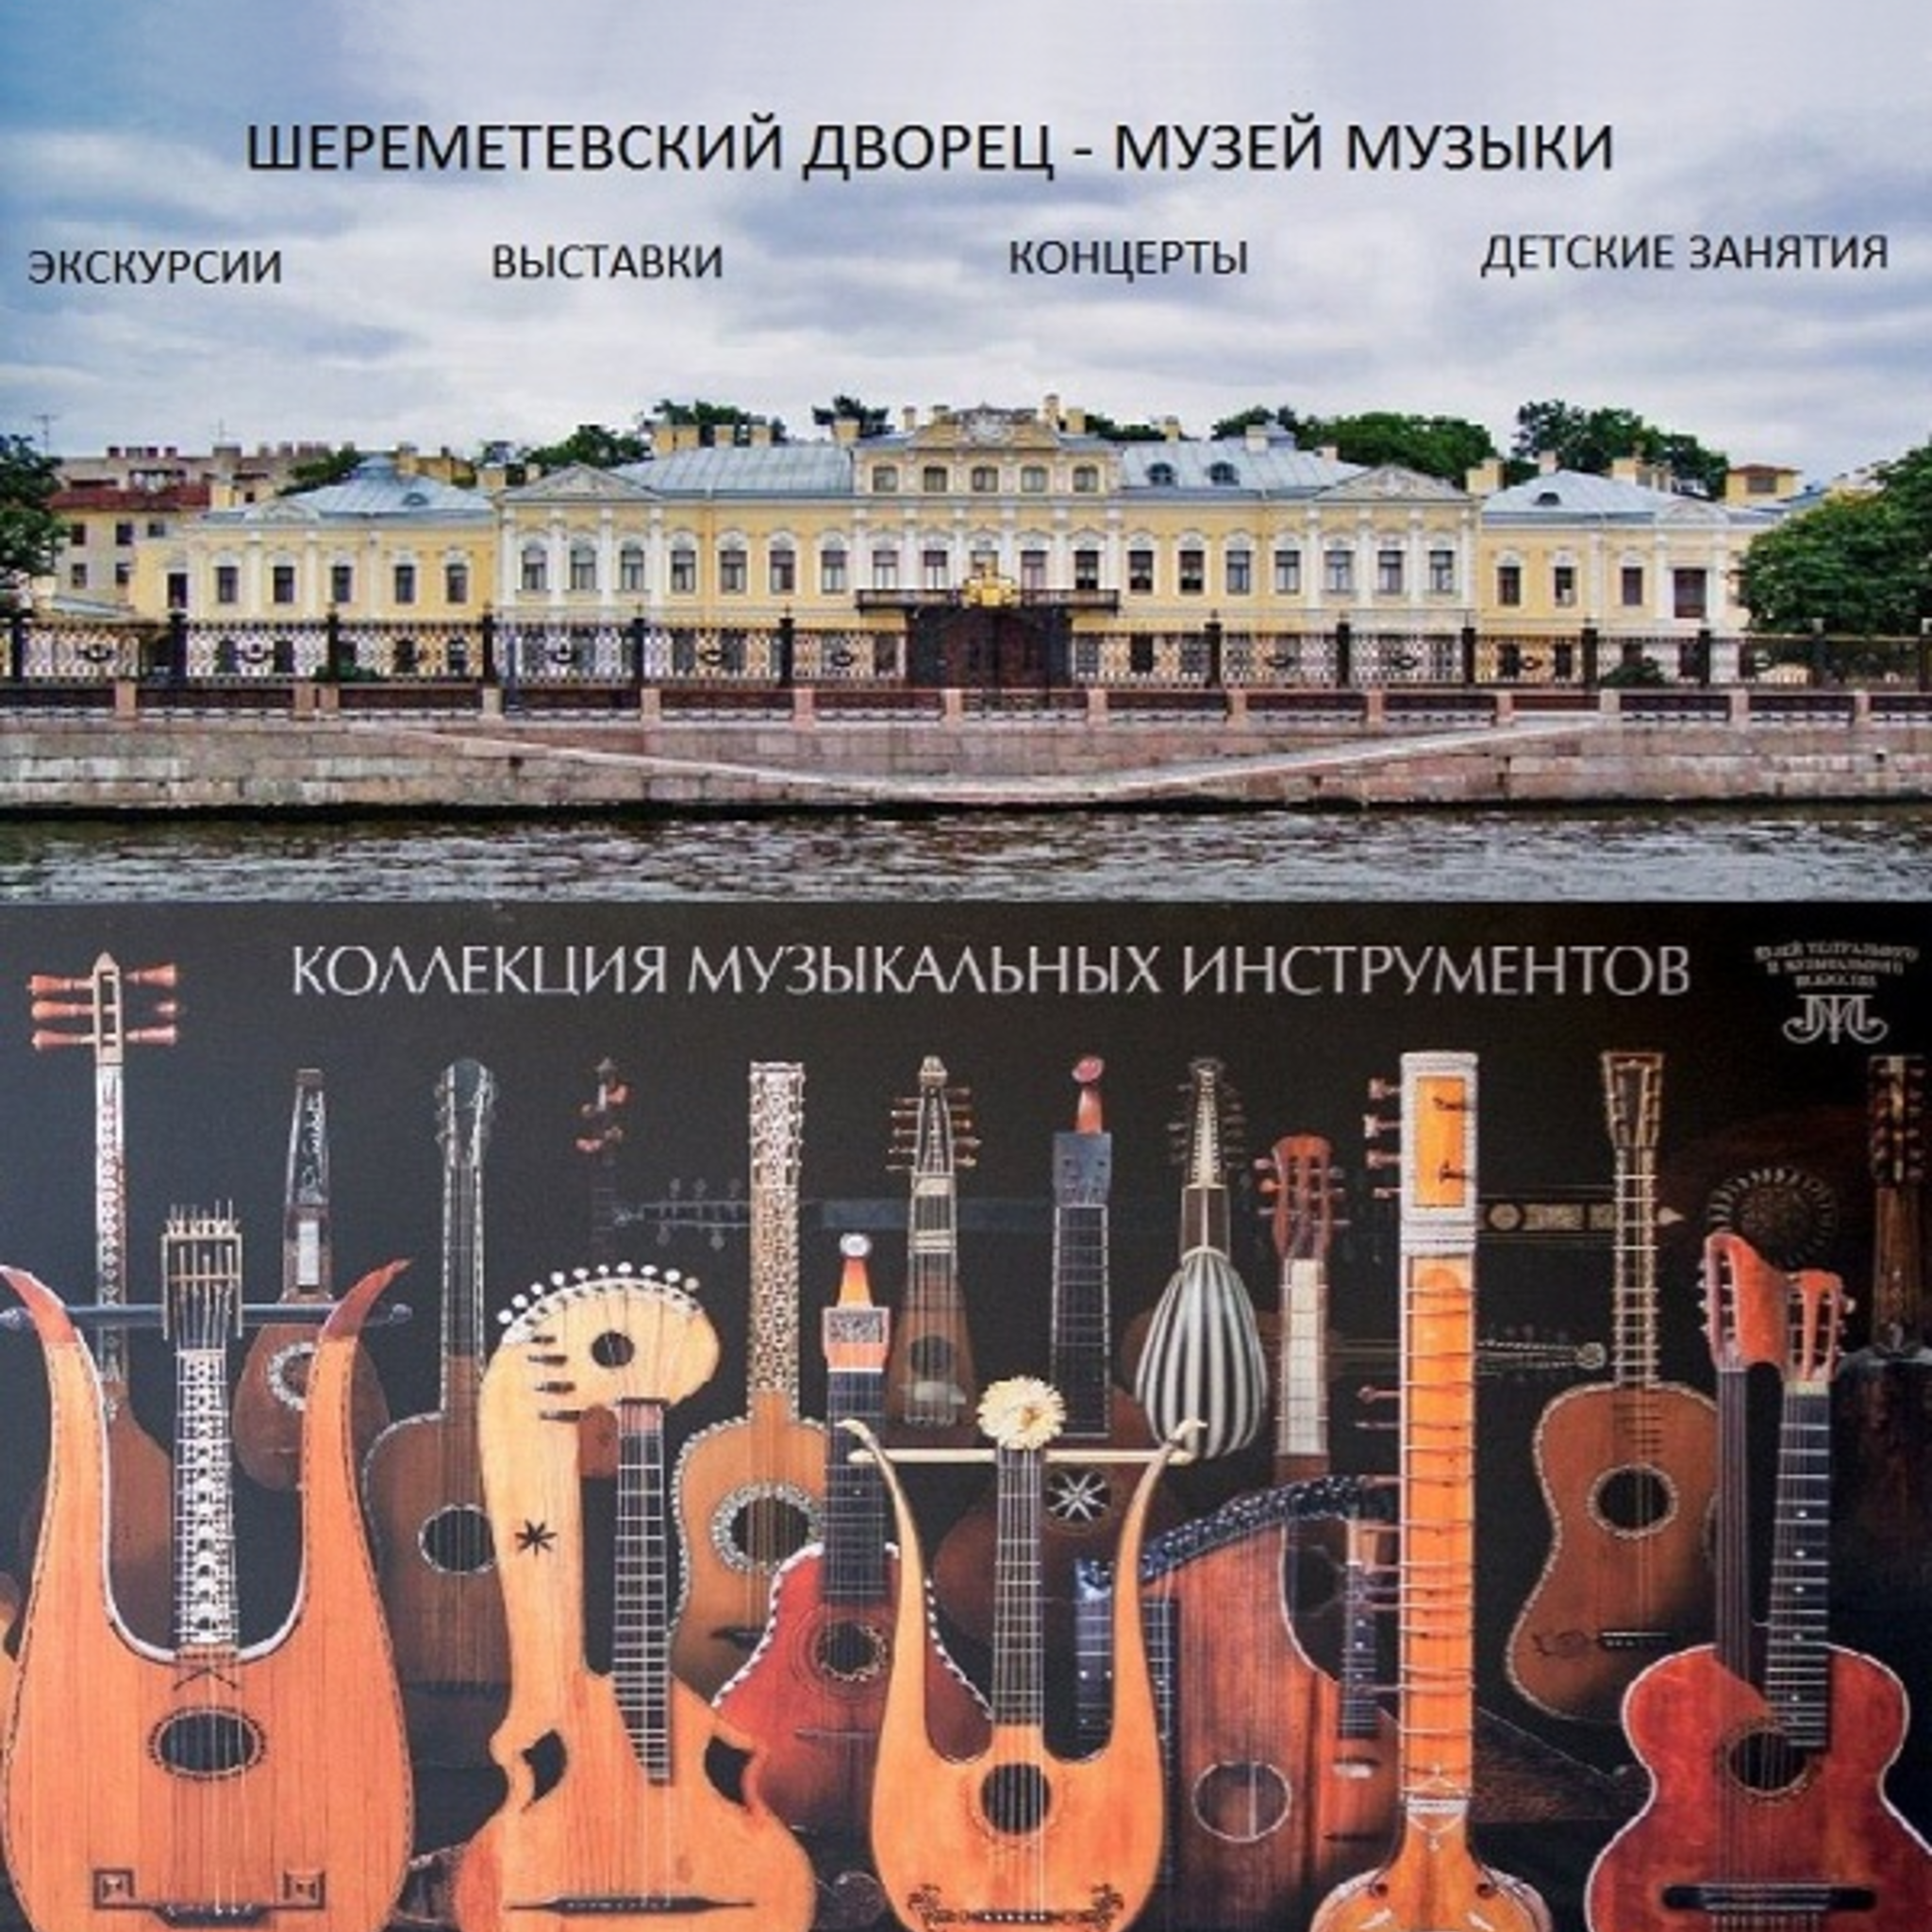 Sheremetev palace – Museum of music